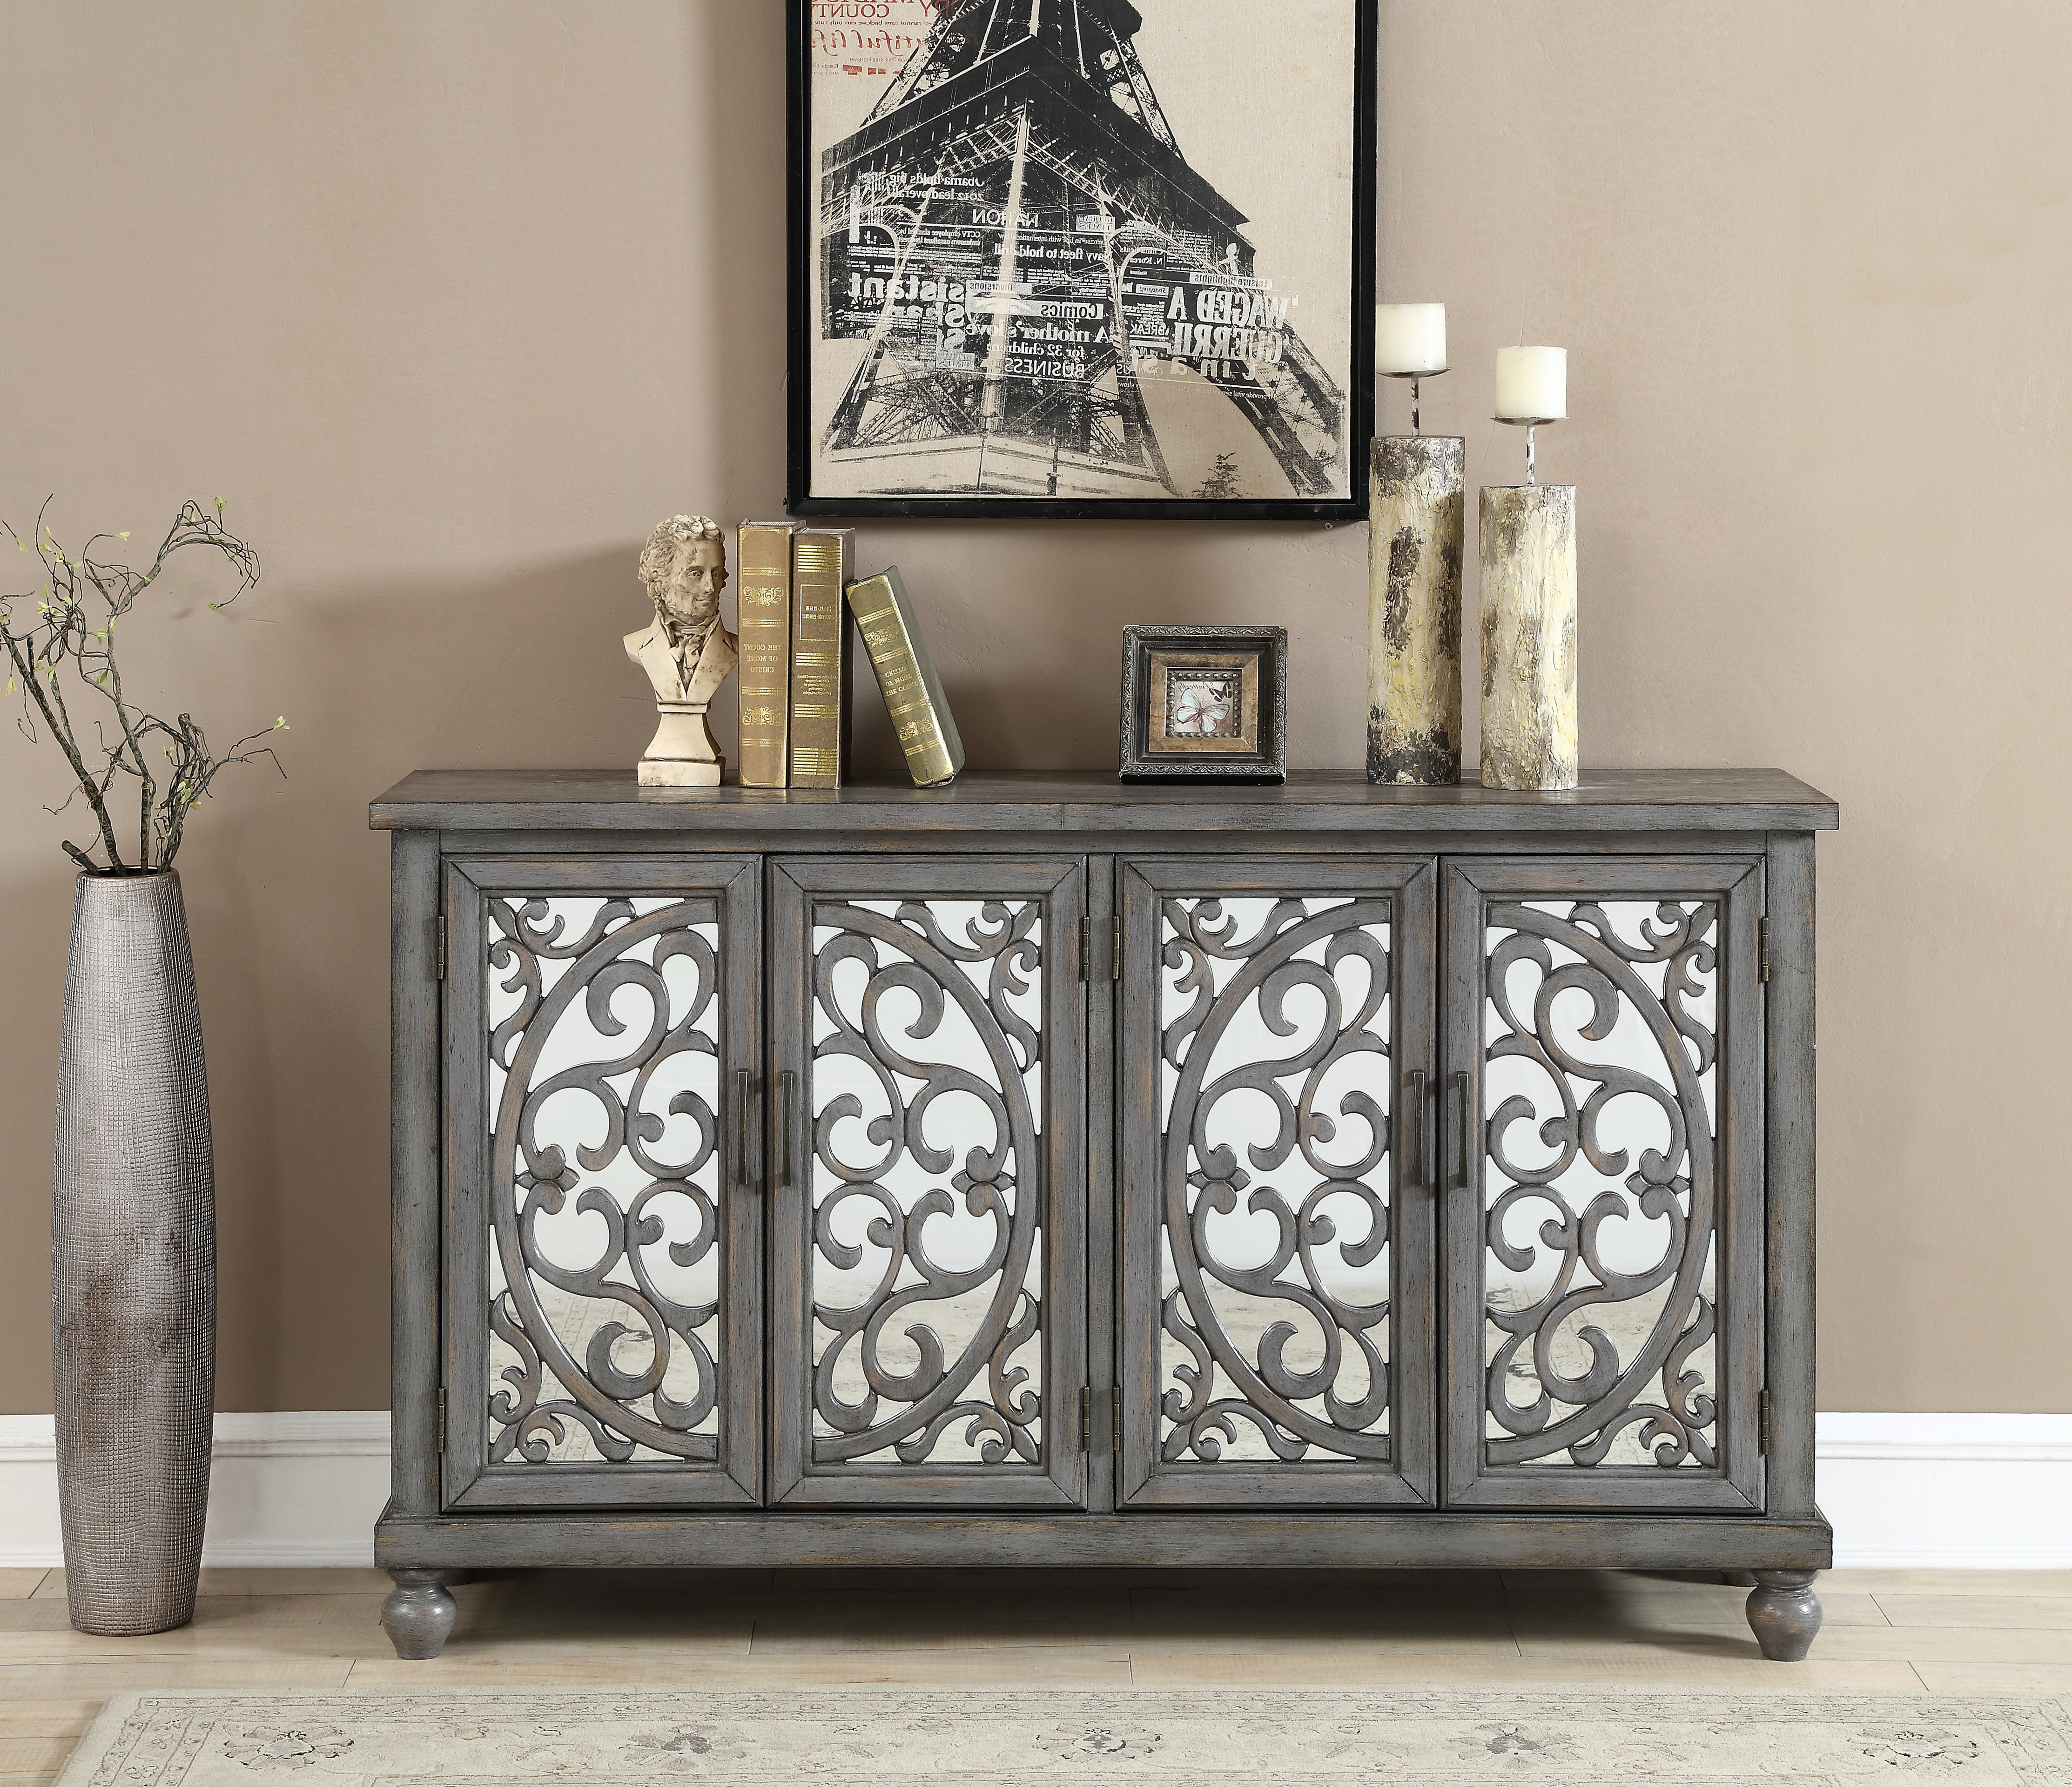 70 Inch Credenza | Wayfair Intended For Abhinav Credenzas (View 5 of 20)